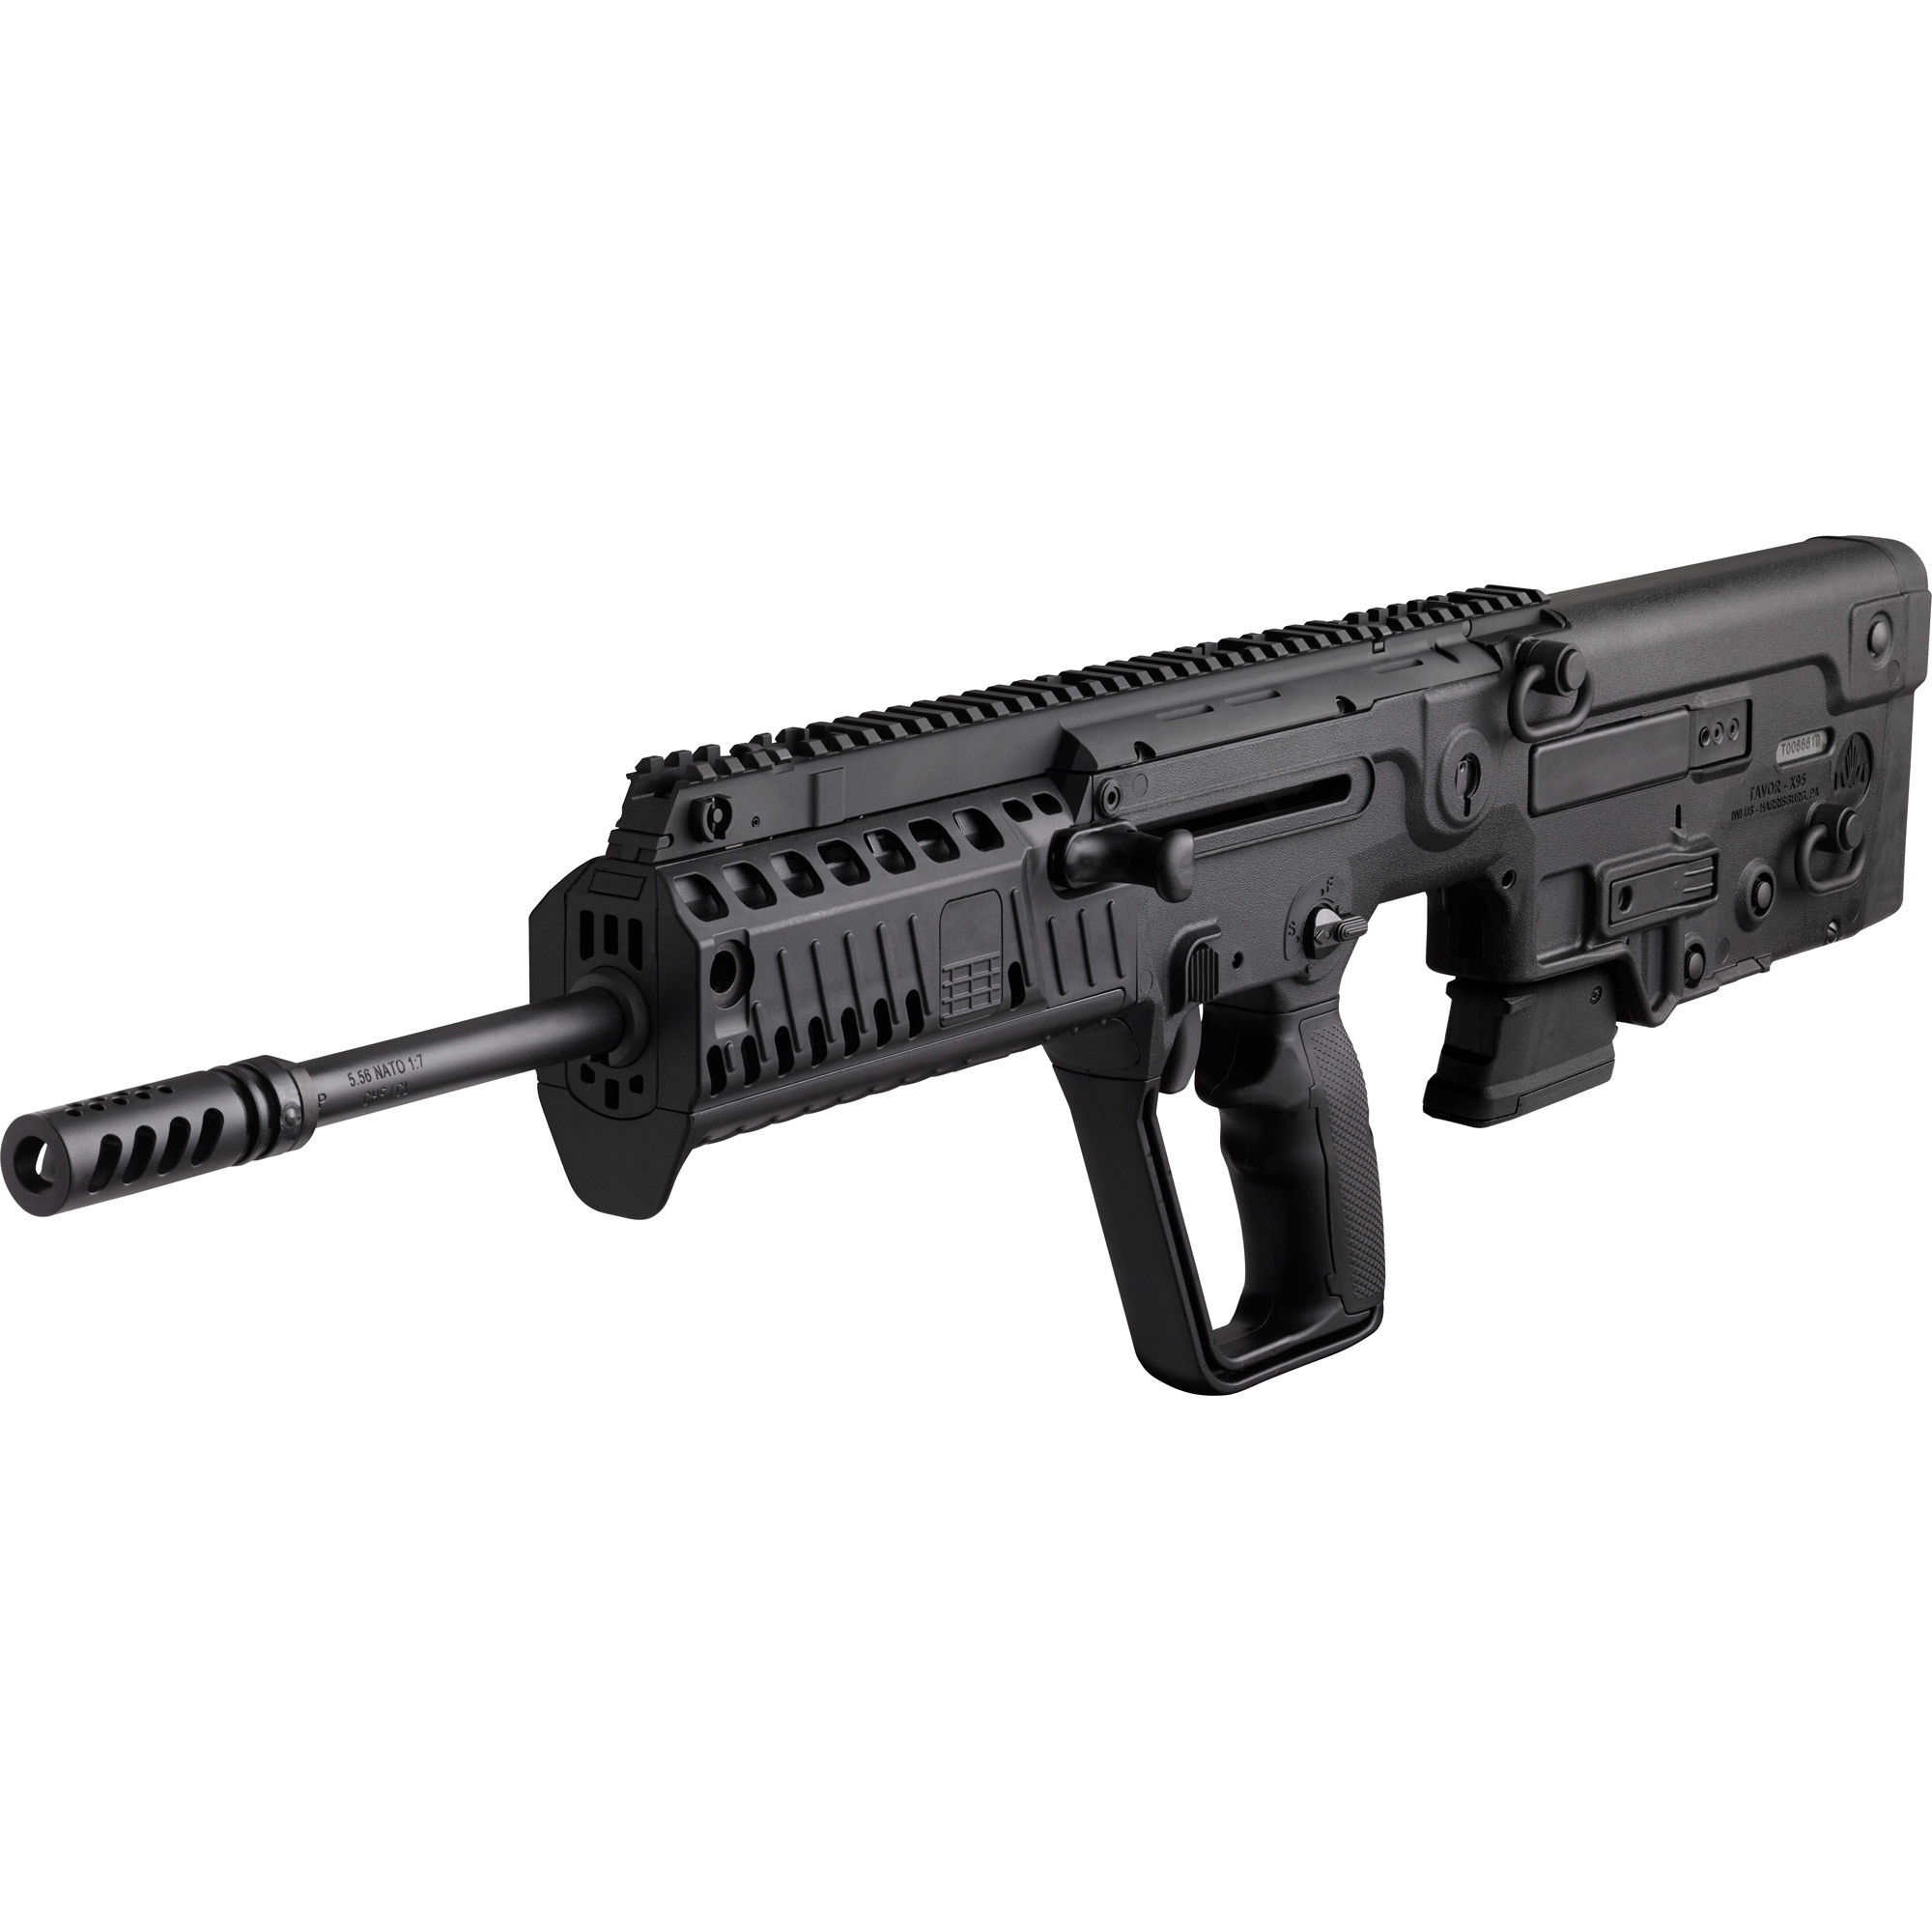 """The Tavor(R) X95(TM) is the next generation bullpup from IWI US"""" Inc. Upgrades and enhancements from the original TAVOR(R) SAR include a new fire control pack with a 5-6 lb. trigger pull"""" repositioning of the ambidextrous mag release to an AR-15 location"""" a forearm with Picatinny rails at the 3"""" 6"""" and 9 o'clock positions with removable rail covers"""" relocation of the charging handle closer to your center mass"""" a modular Tavor style pistol grip that can be swapped out to a standard pistol grip with traditional trigger guard and a smaller"""" lower profile bolt release button."""